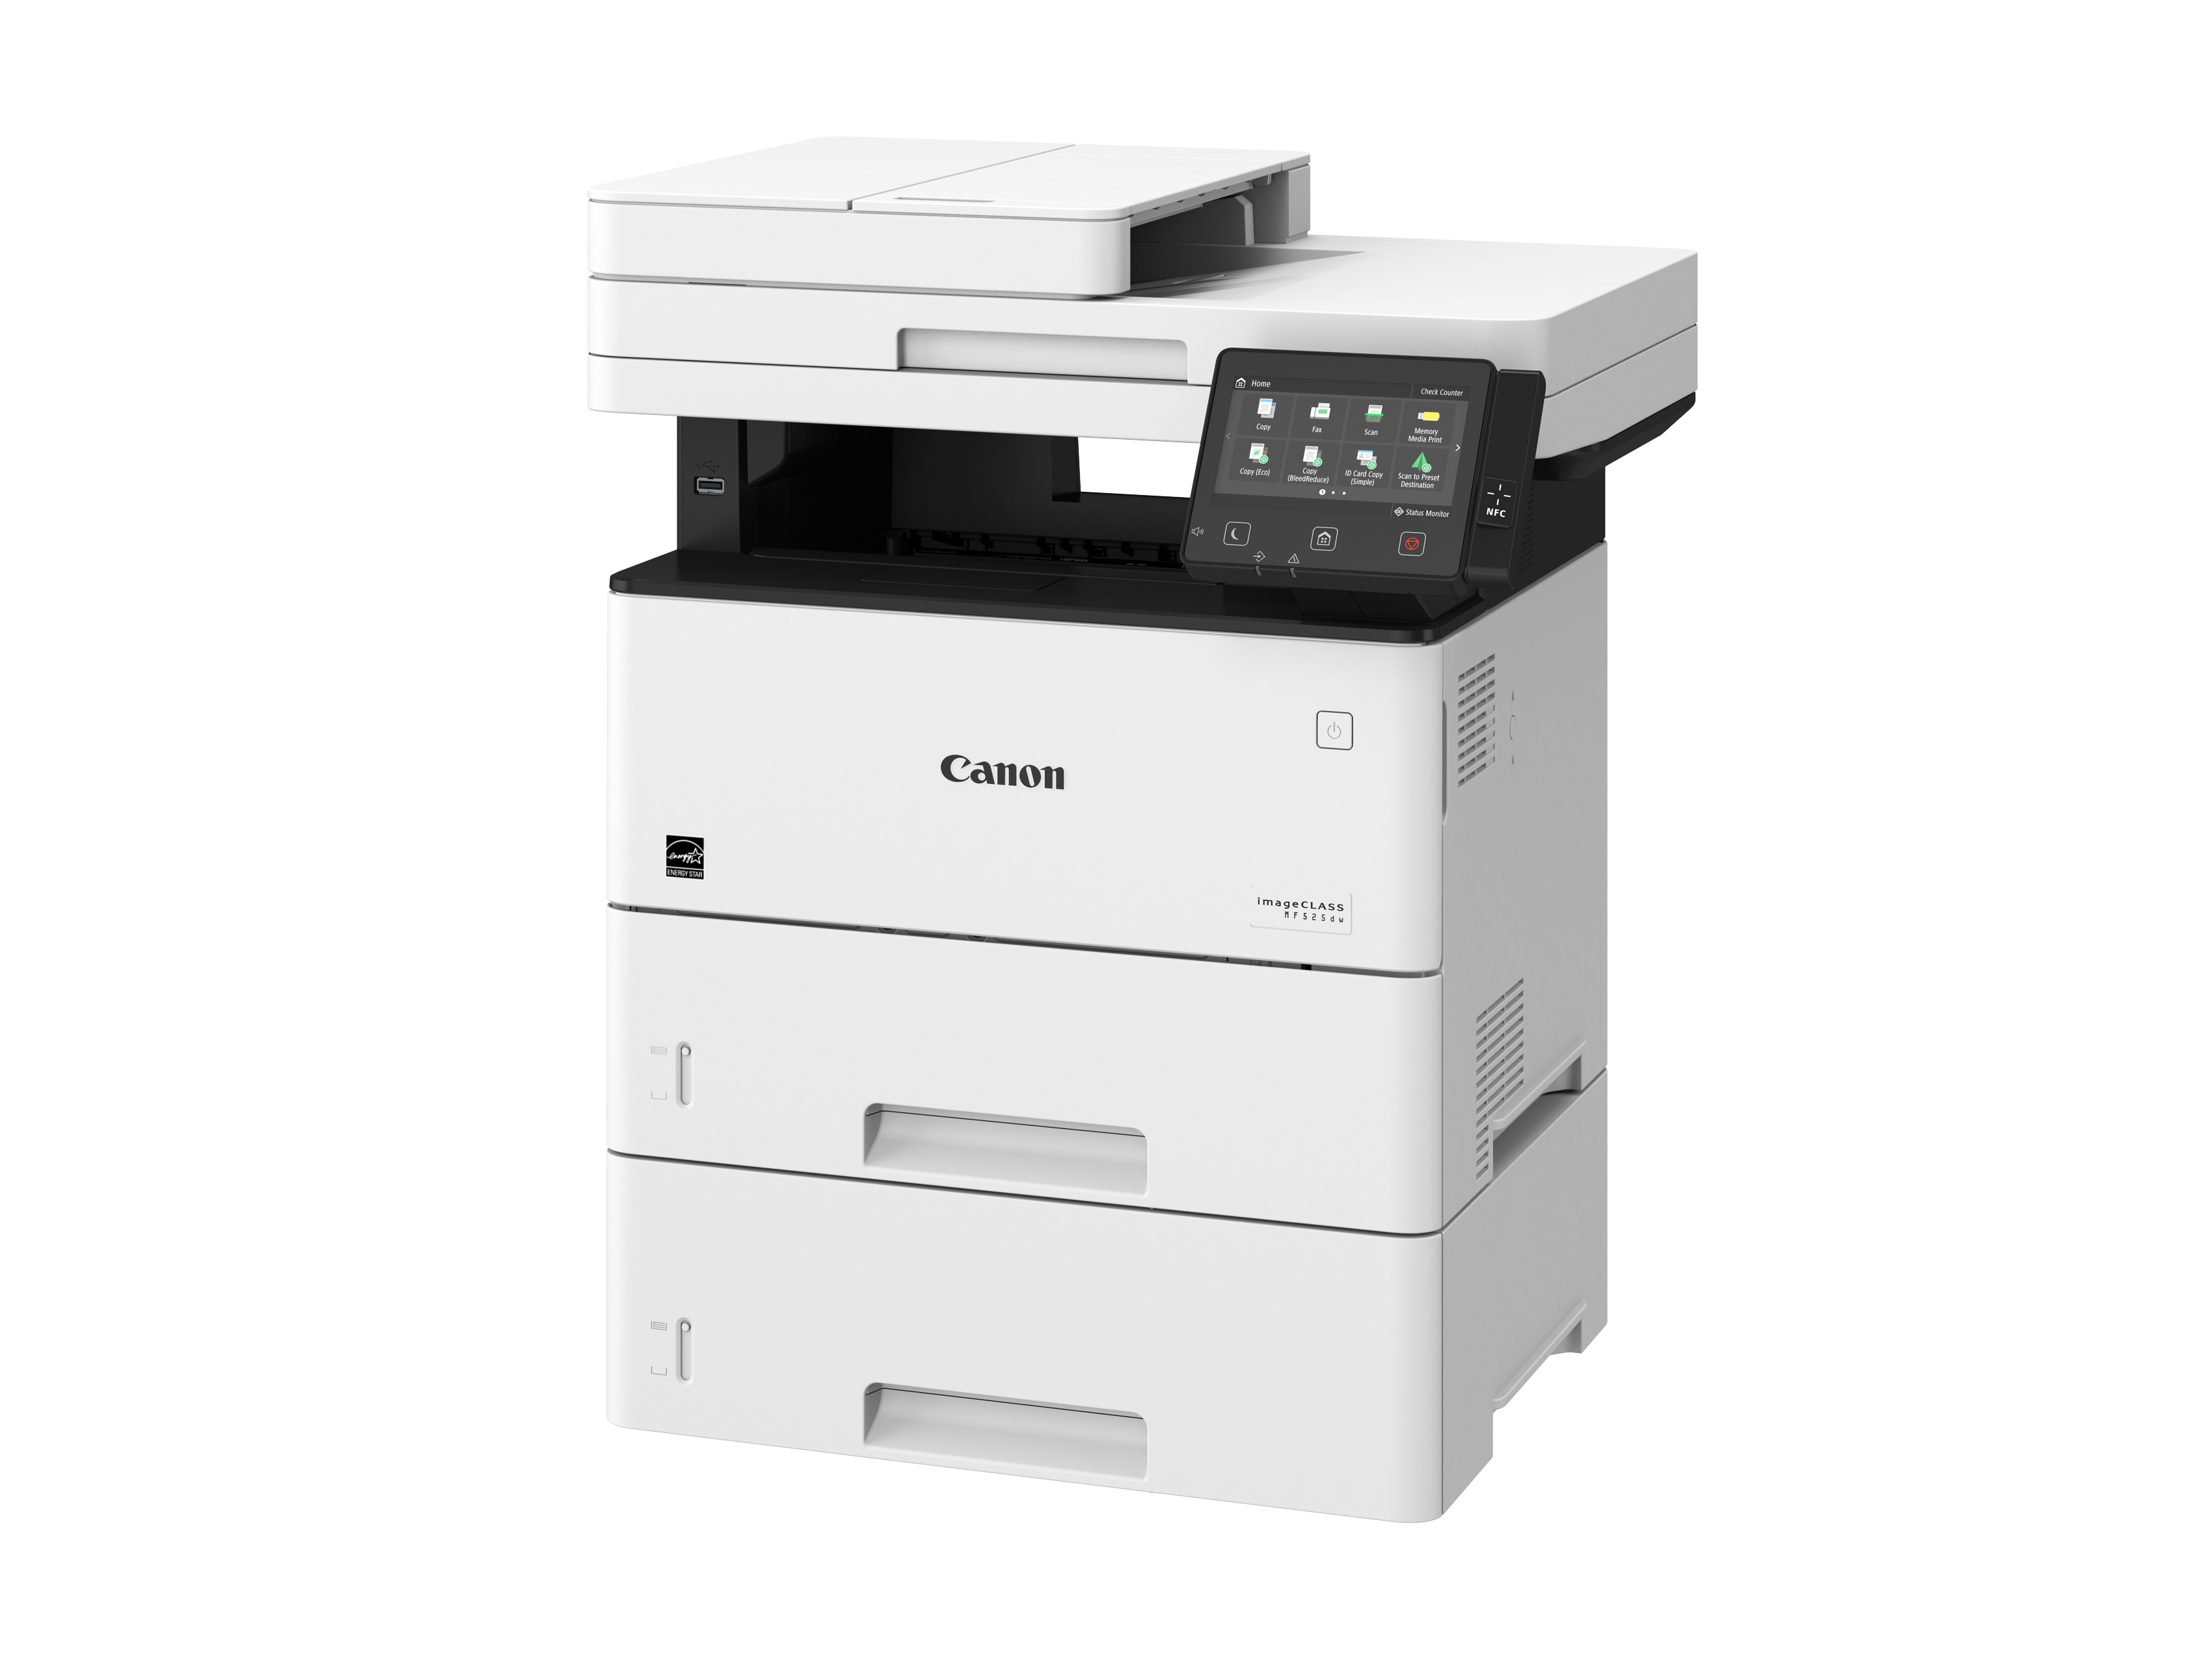 Canon imageCLASS MF525dw All-in-One | Laser Printer | RYAN